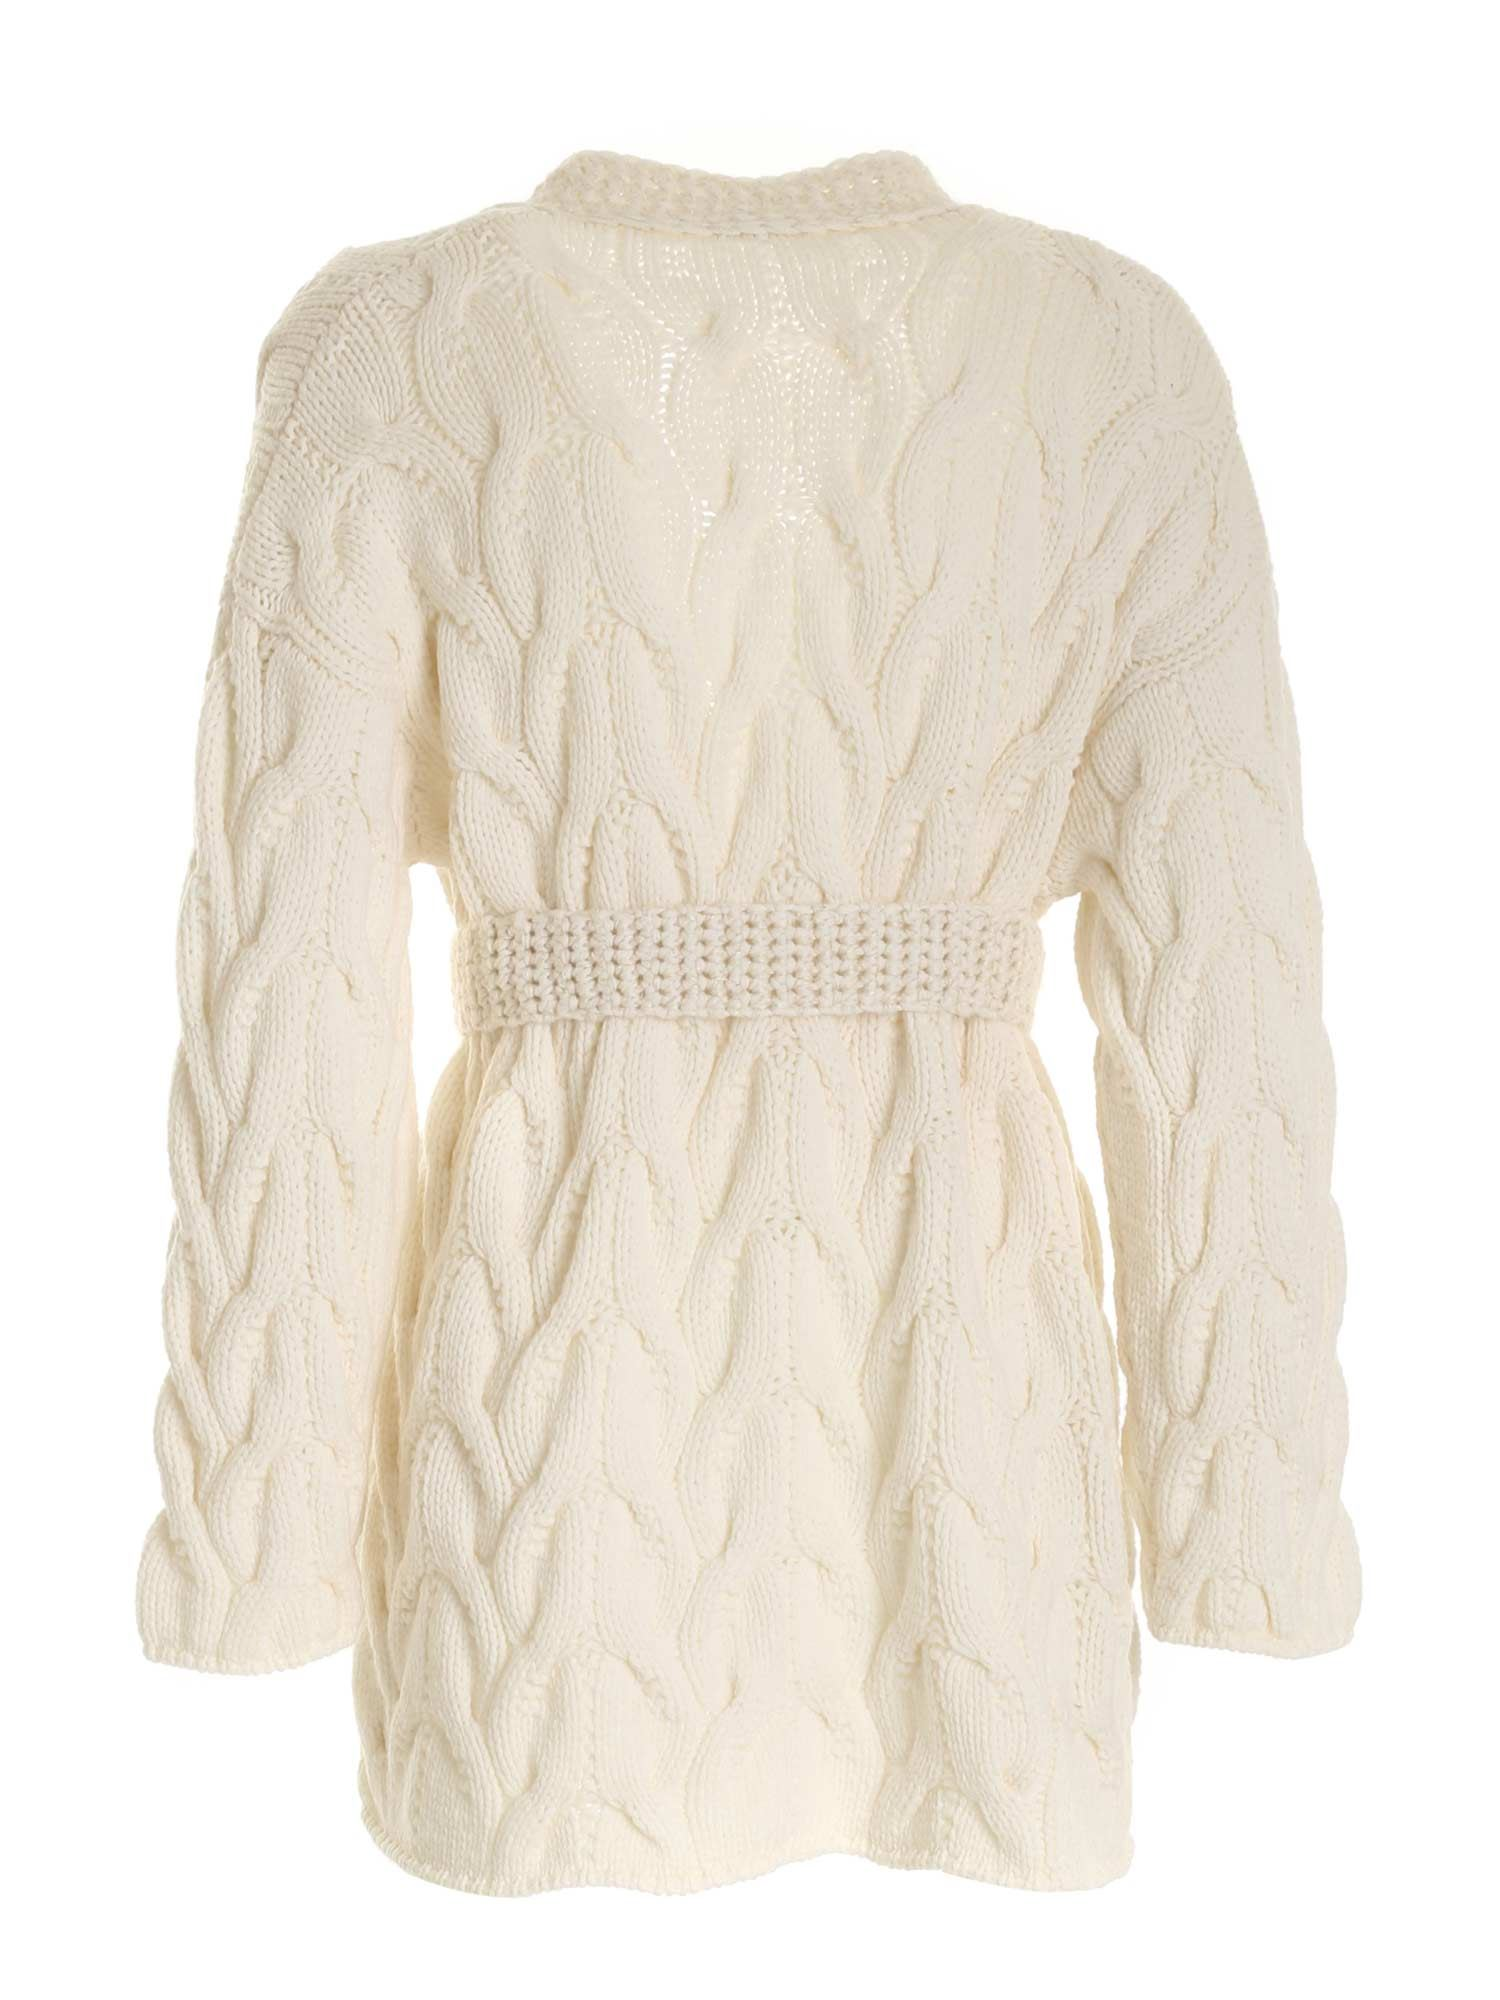 MALO Silks OVERSIZED CABLE CARDIGAN IN CREAM COLOR